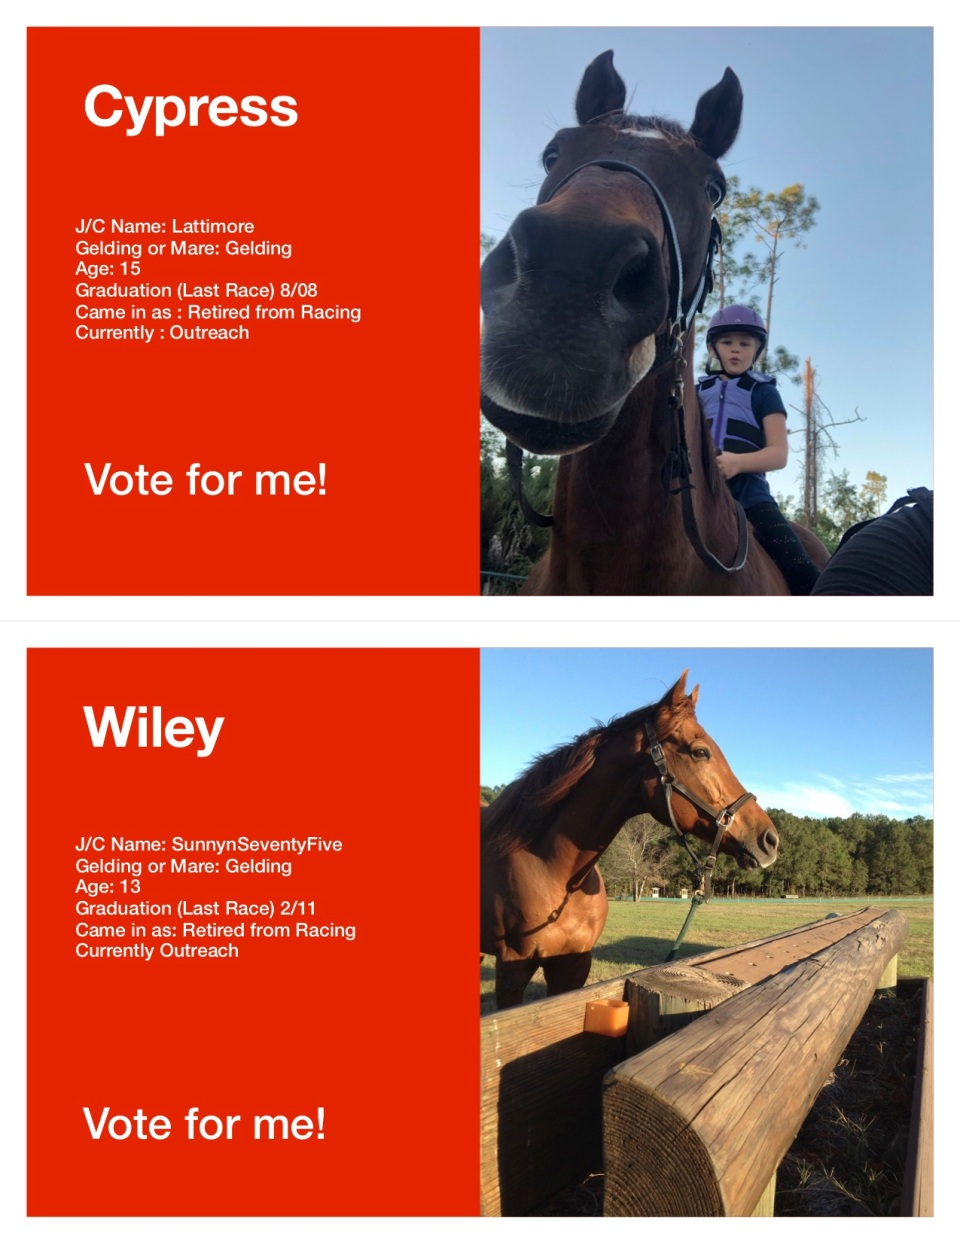 Horse Voting Sheets Template Wiley Cypress jpg